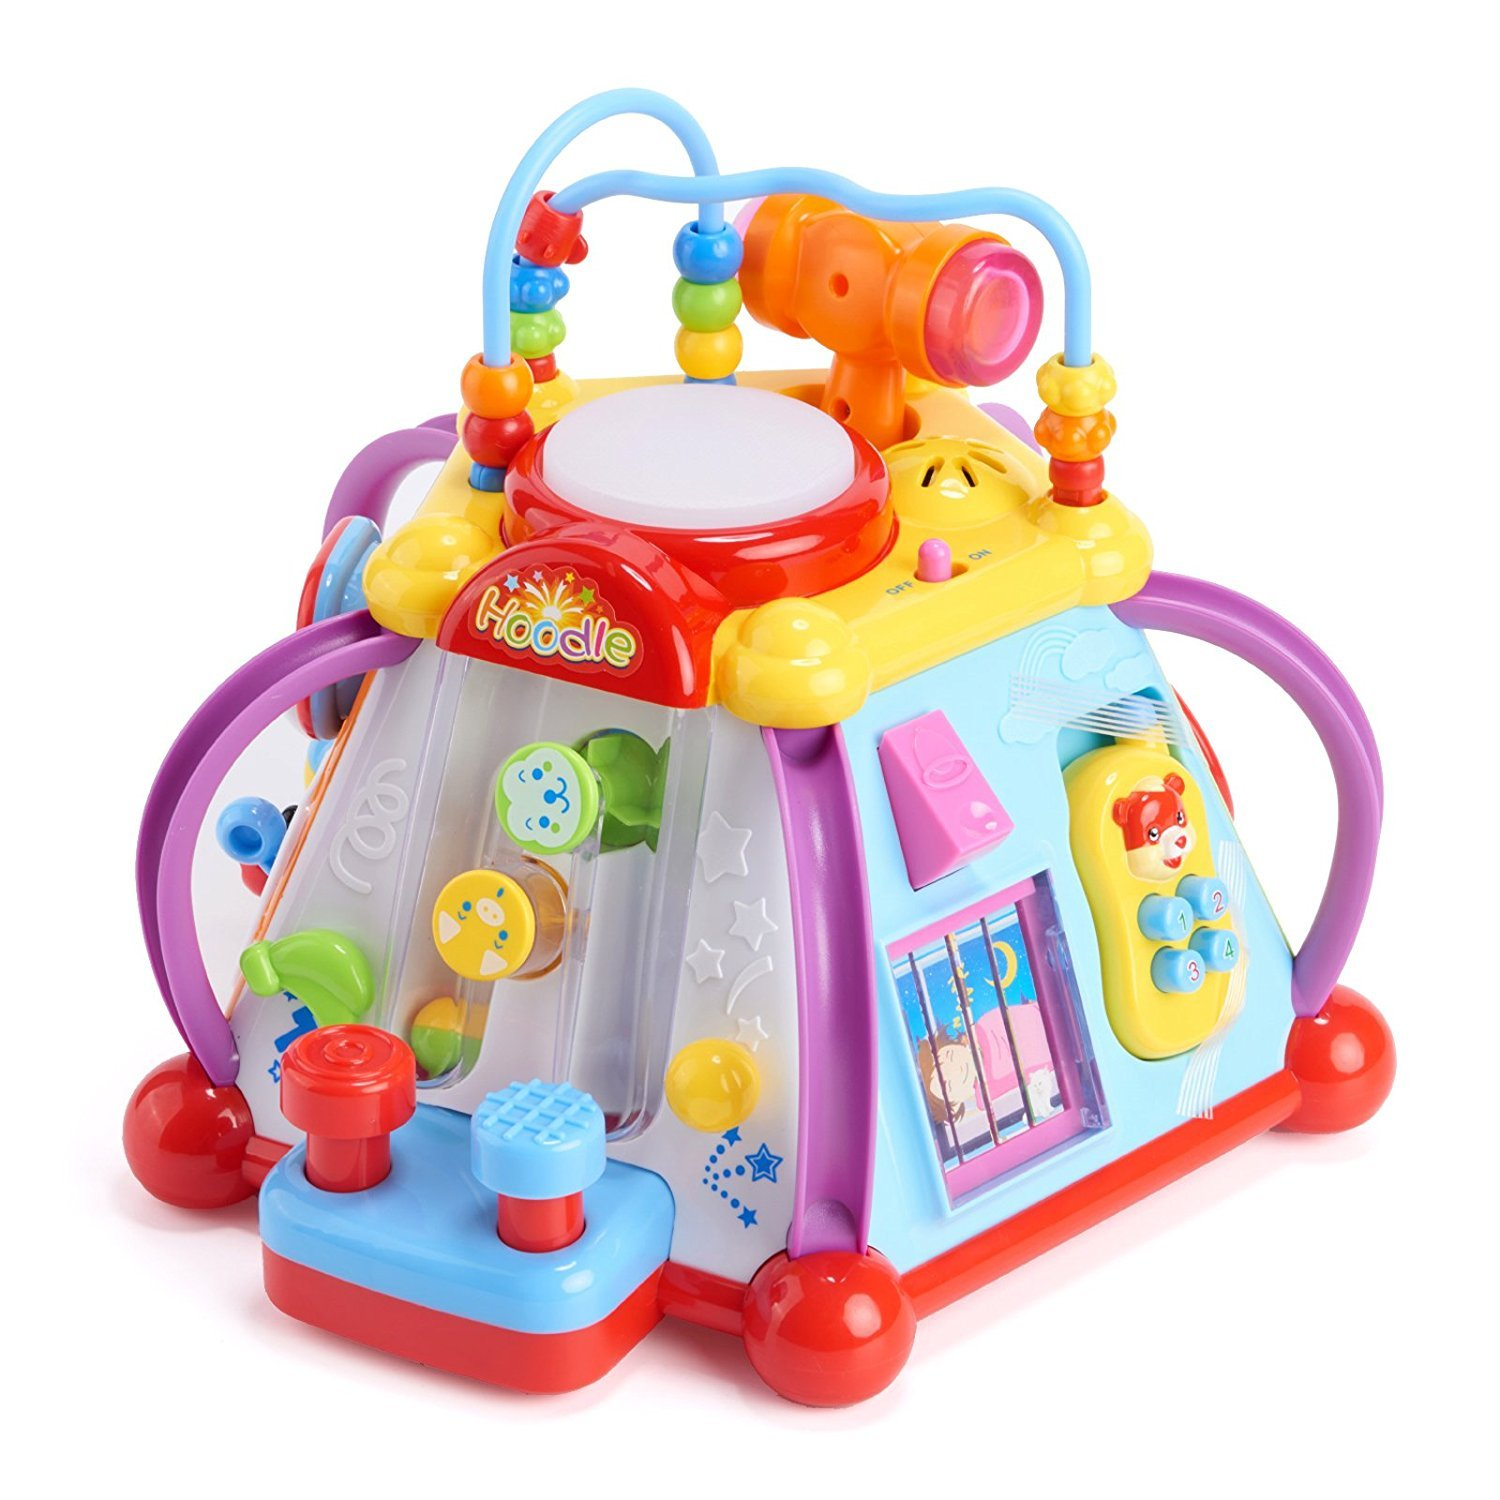 Woby Musical Activity Cube Toy Development Educational Game Play Learning Center Toy for 1 Year Old Baby Toddler Boy and Girl